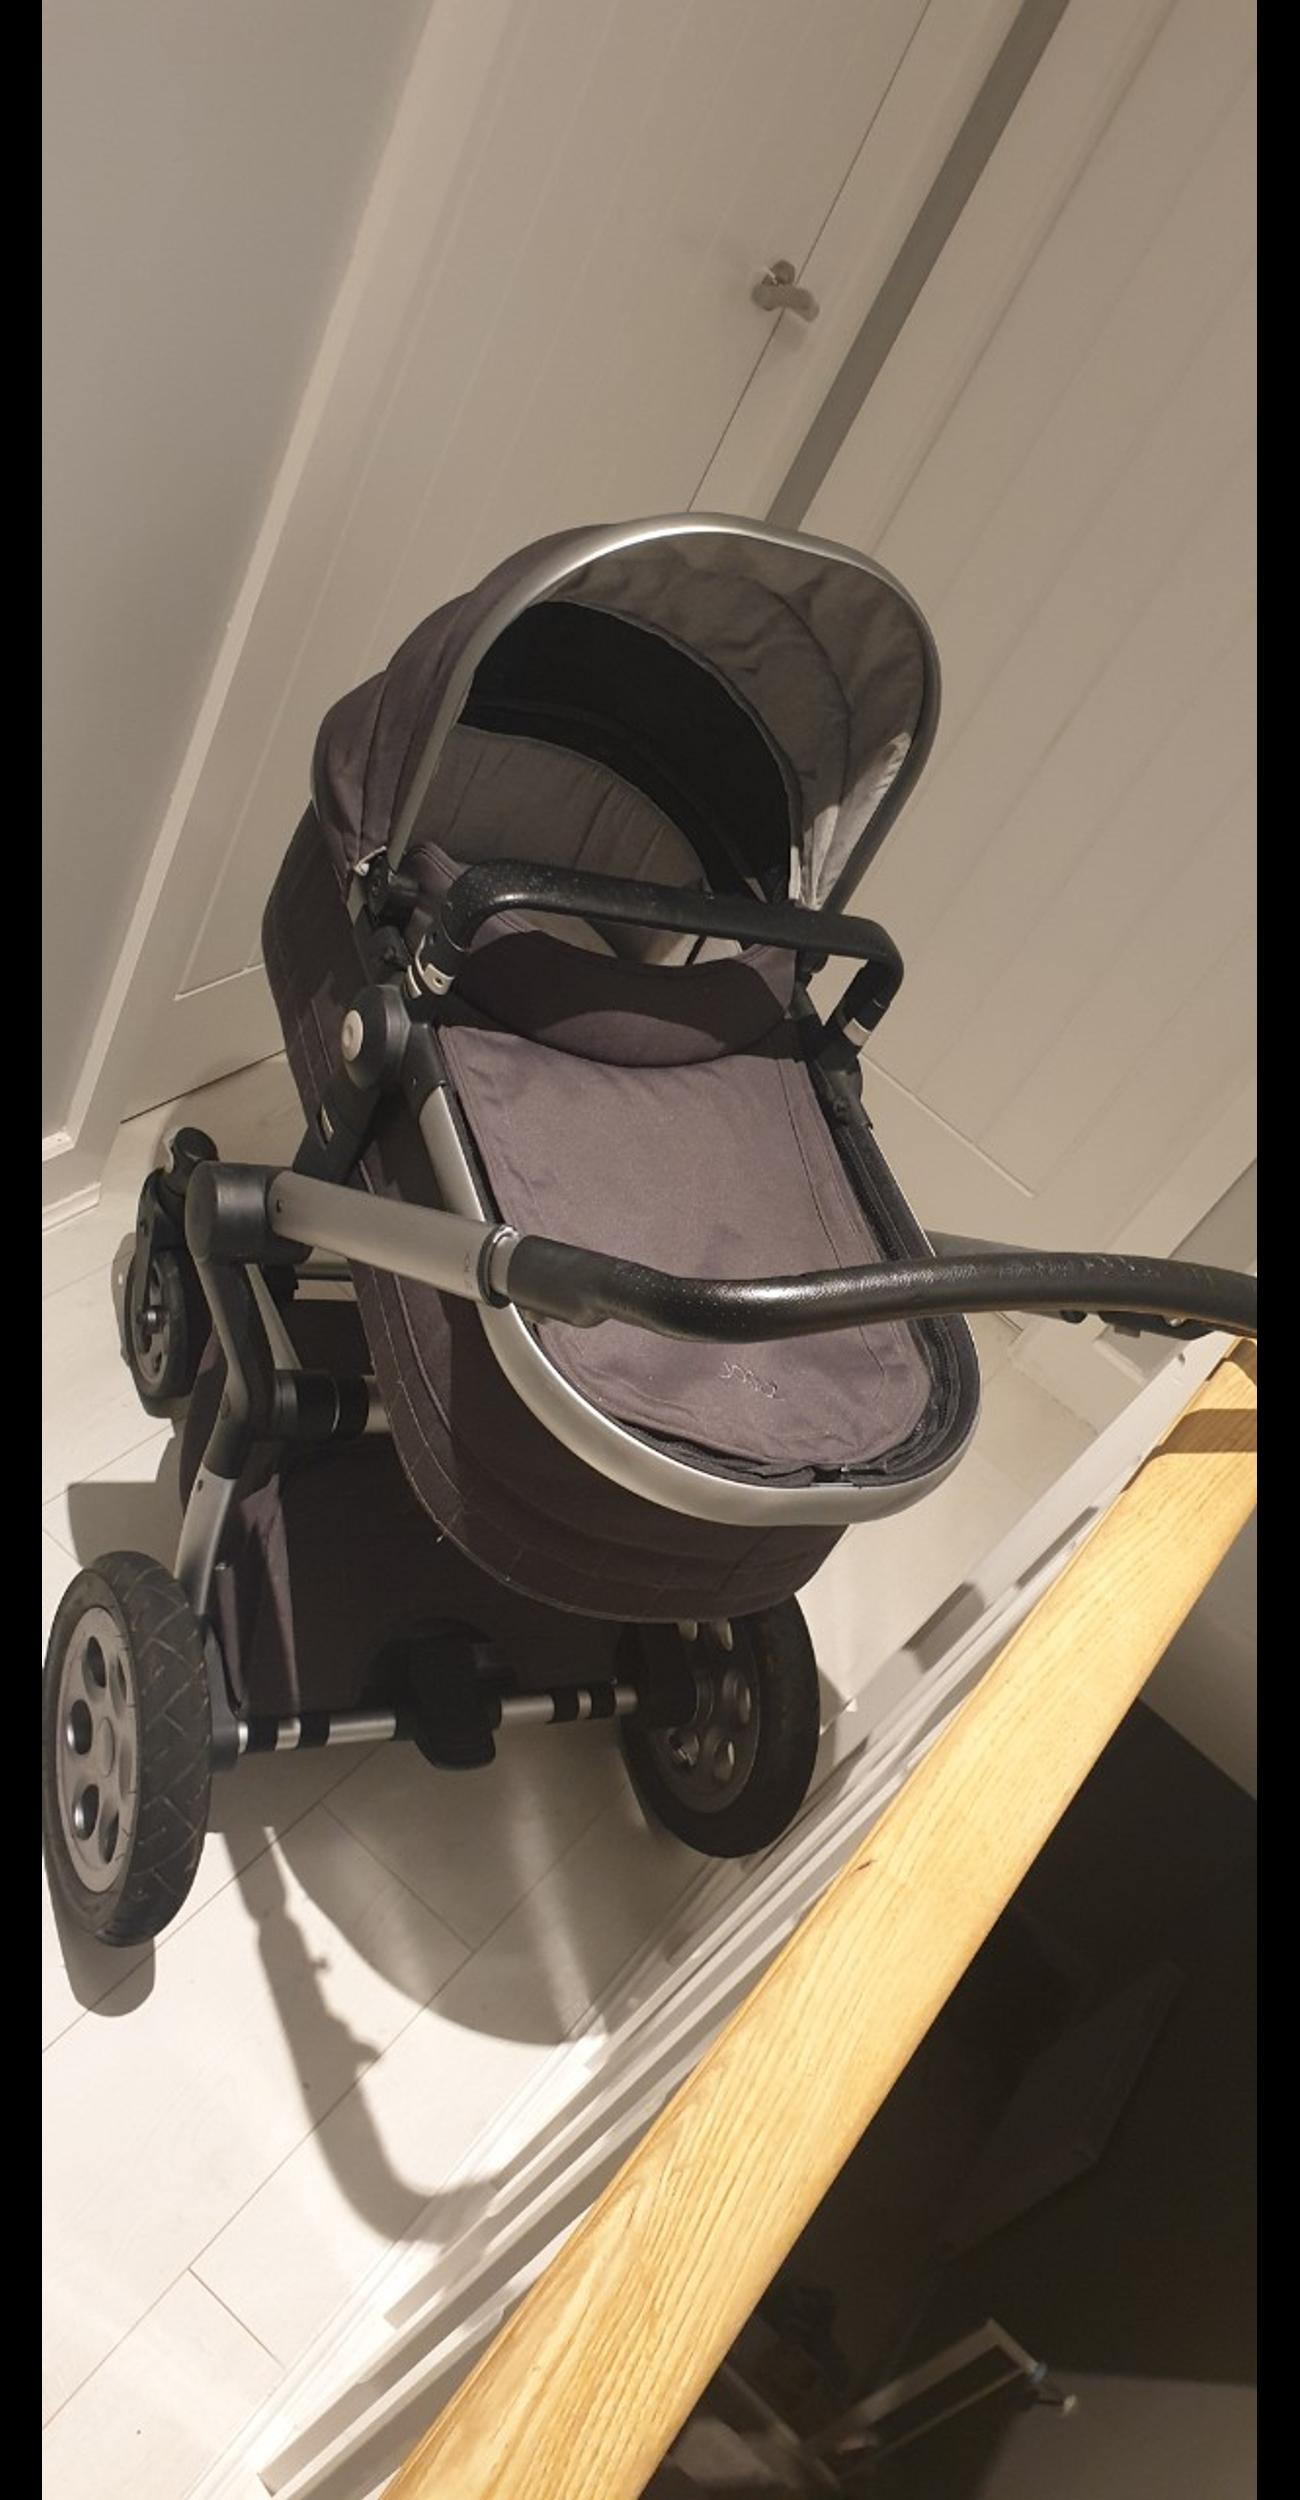 Joolz Pram Mothercare Joolz Travel System In Bs35 Thornbury For 200 00 For Sale